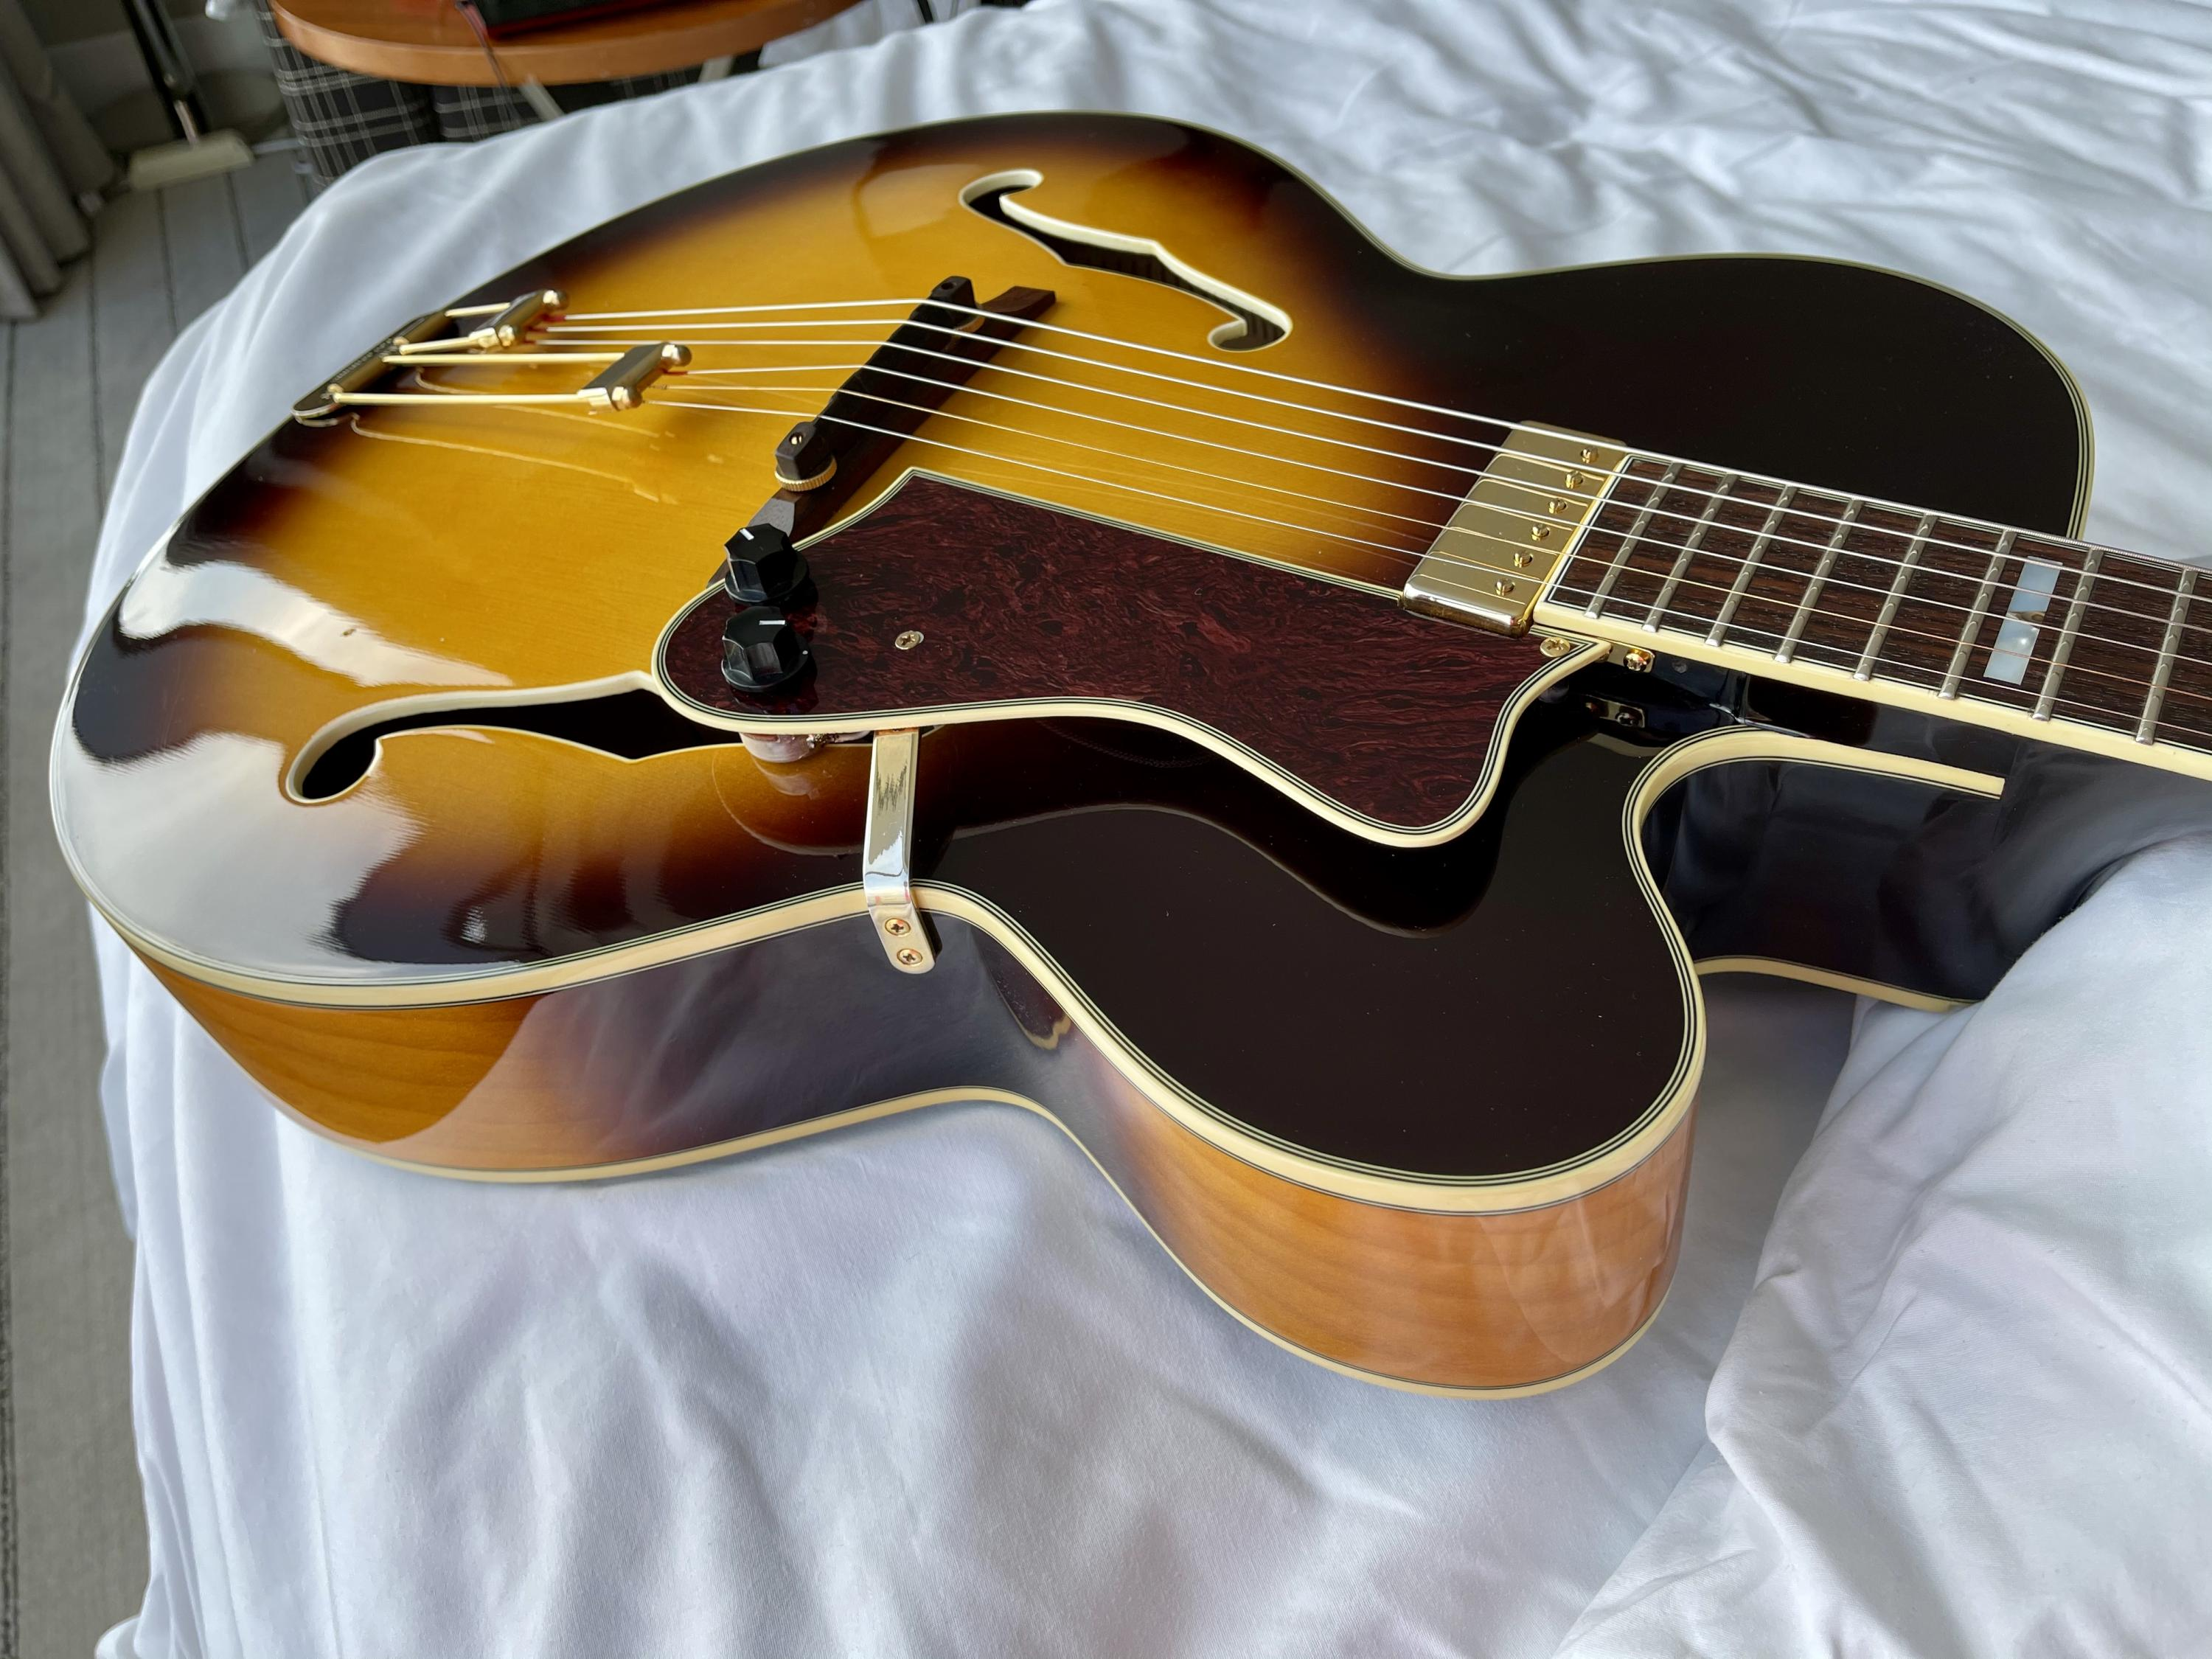 2003 Epiphone Emperor Regent Video added-47dca386-ba0a-4425-962b-4207245bc388-jpg